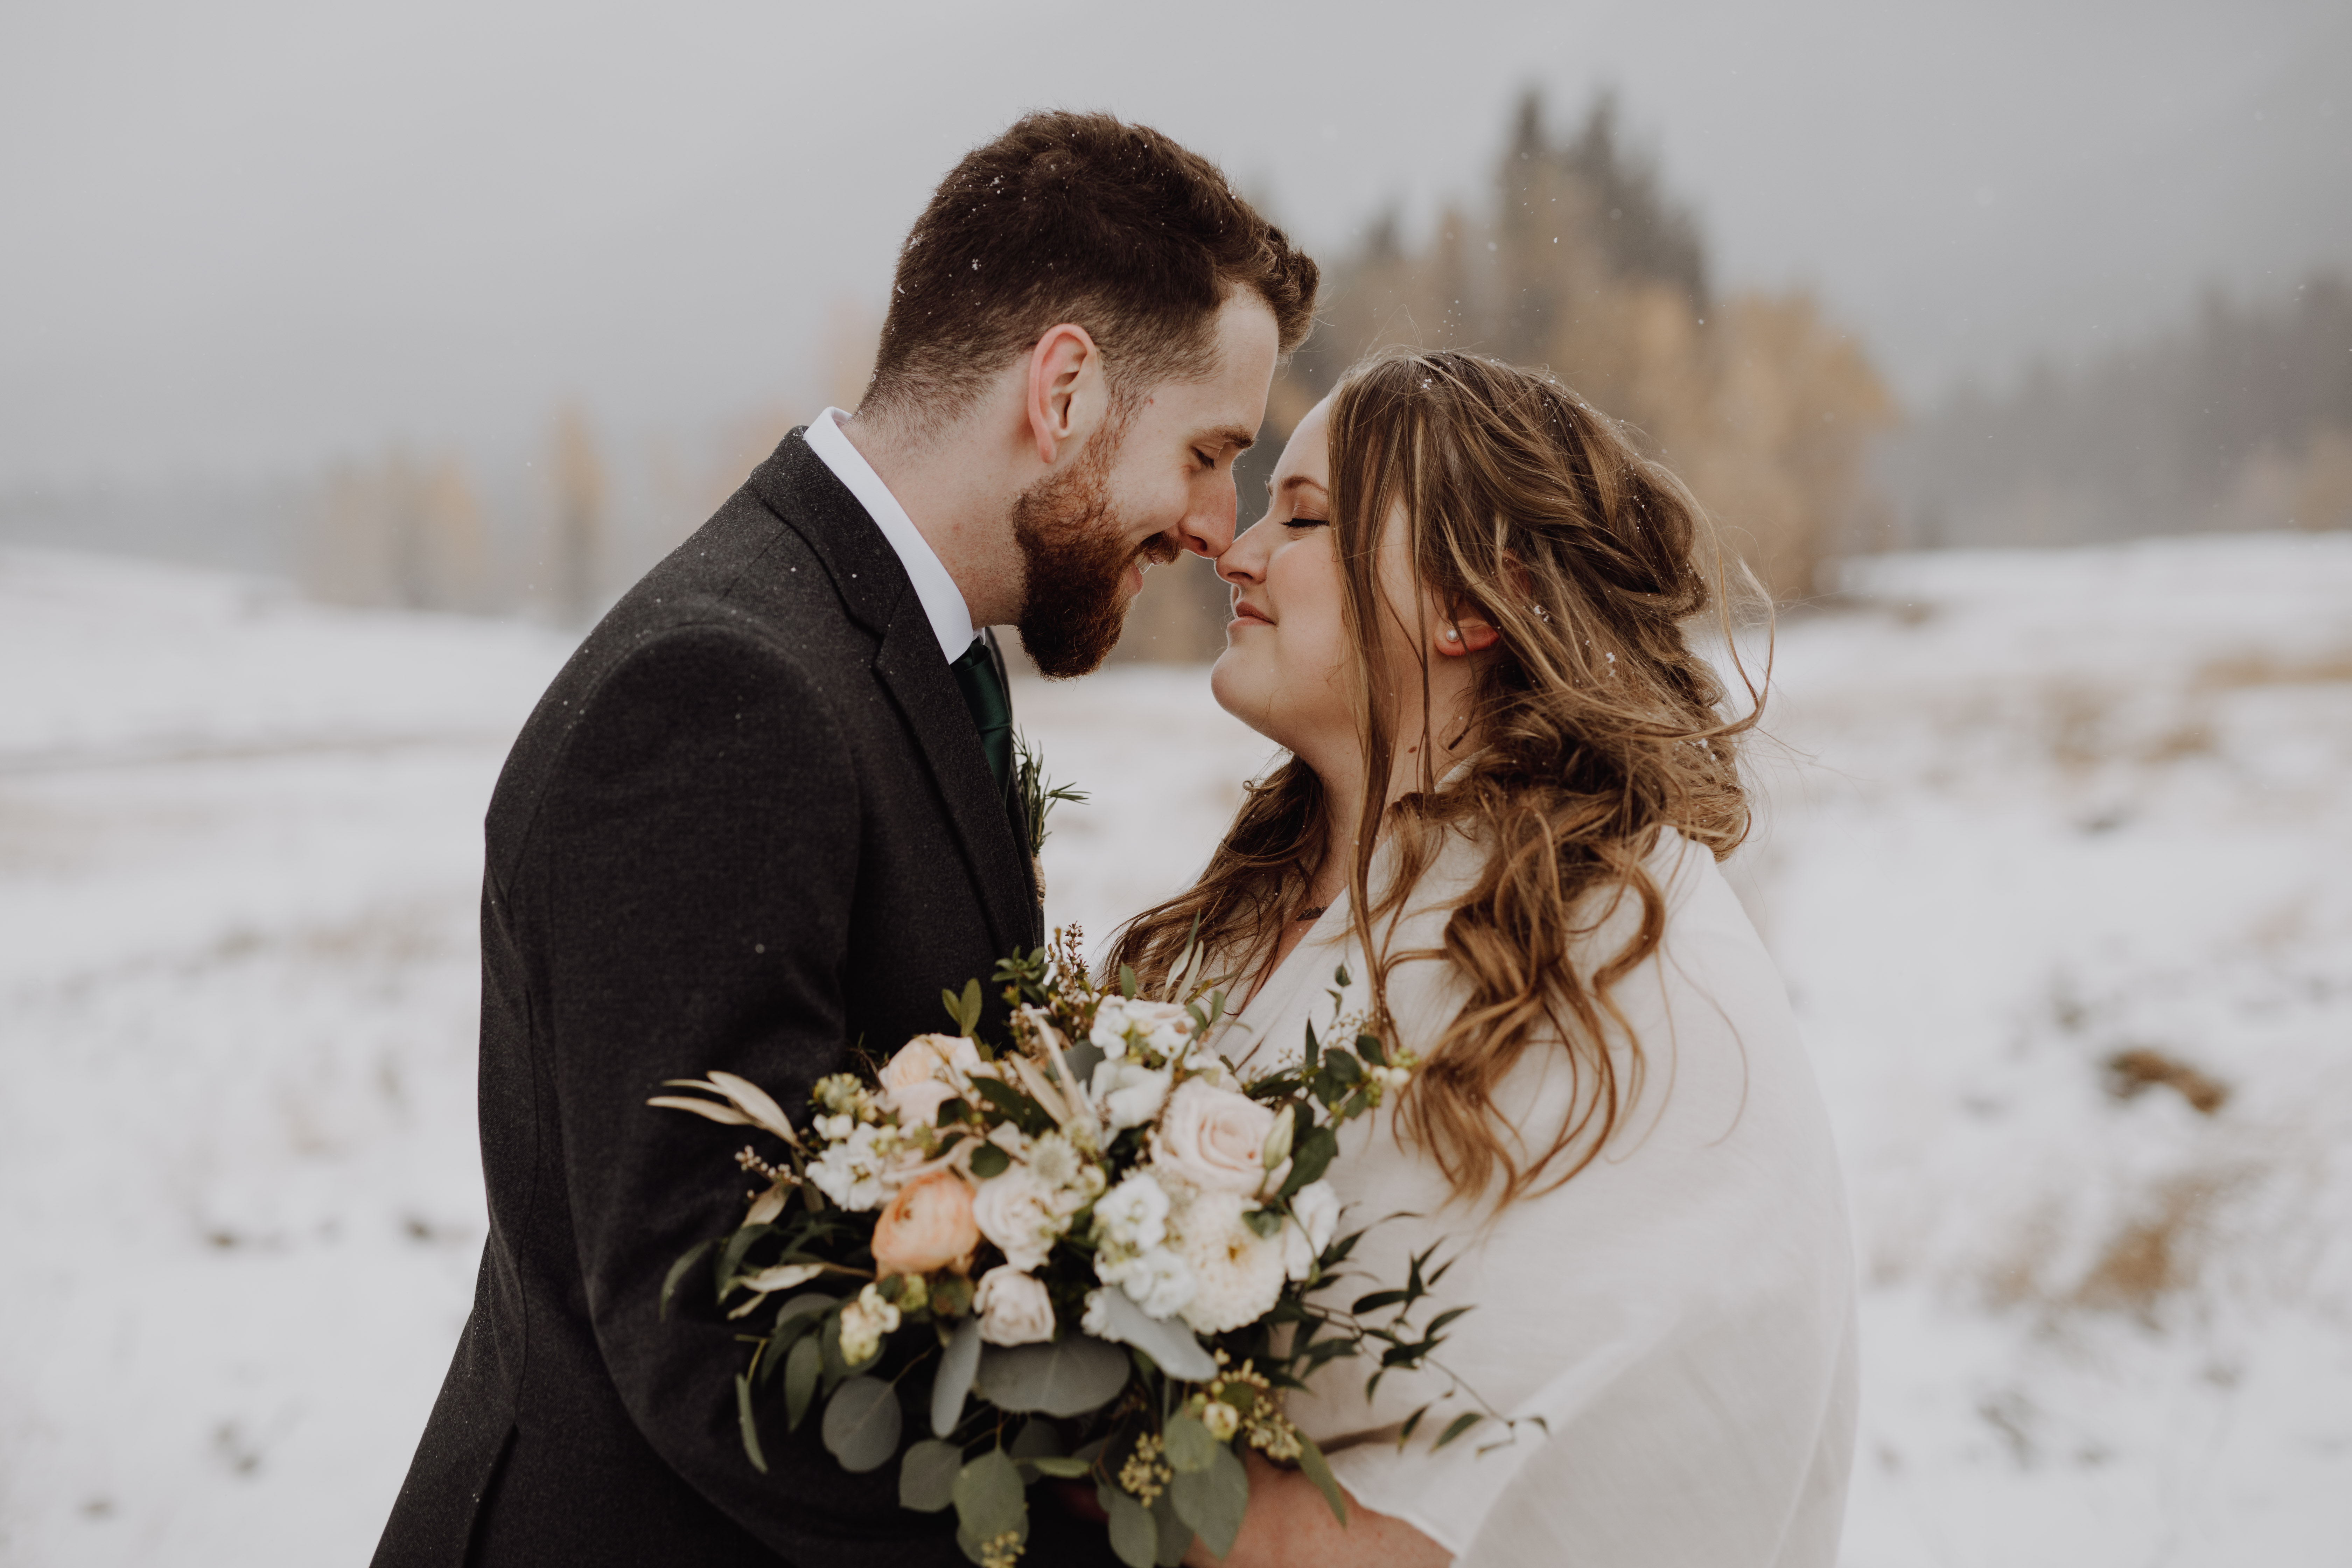 Banff Wedding - romantic winter wedding